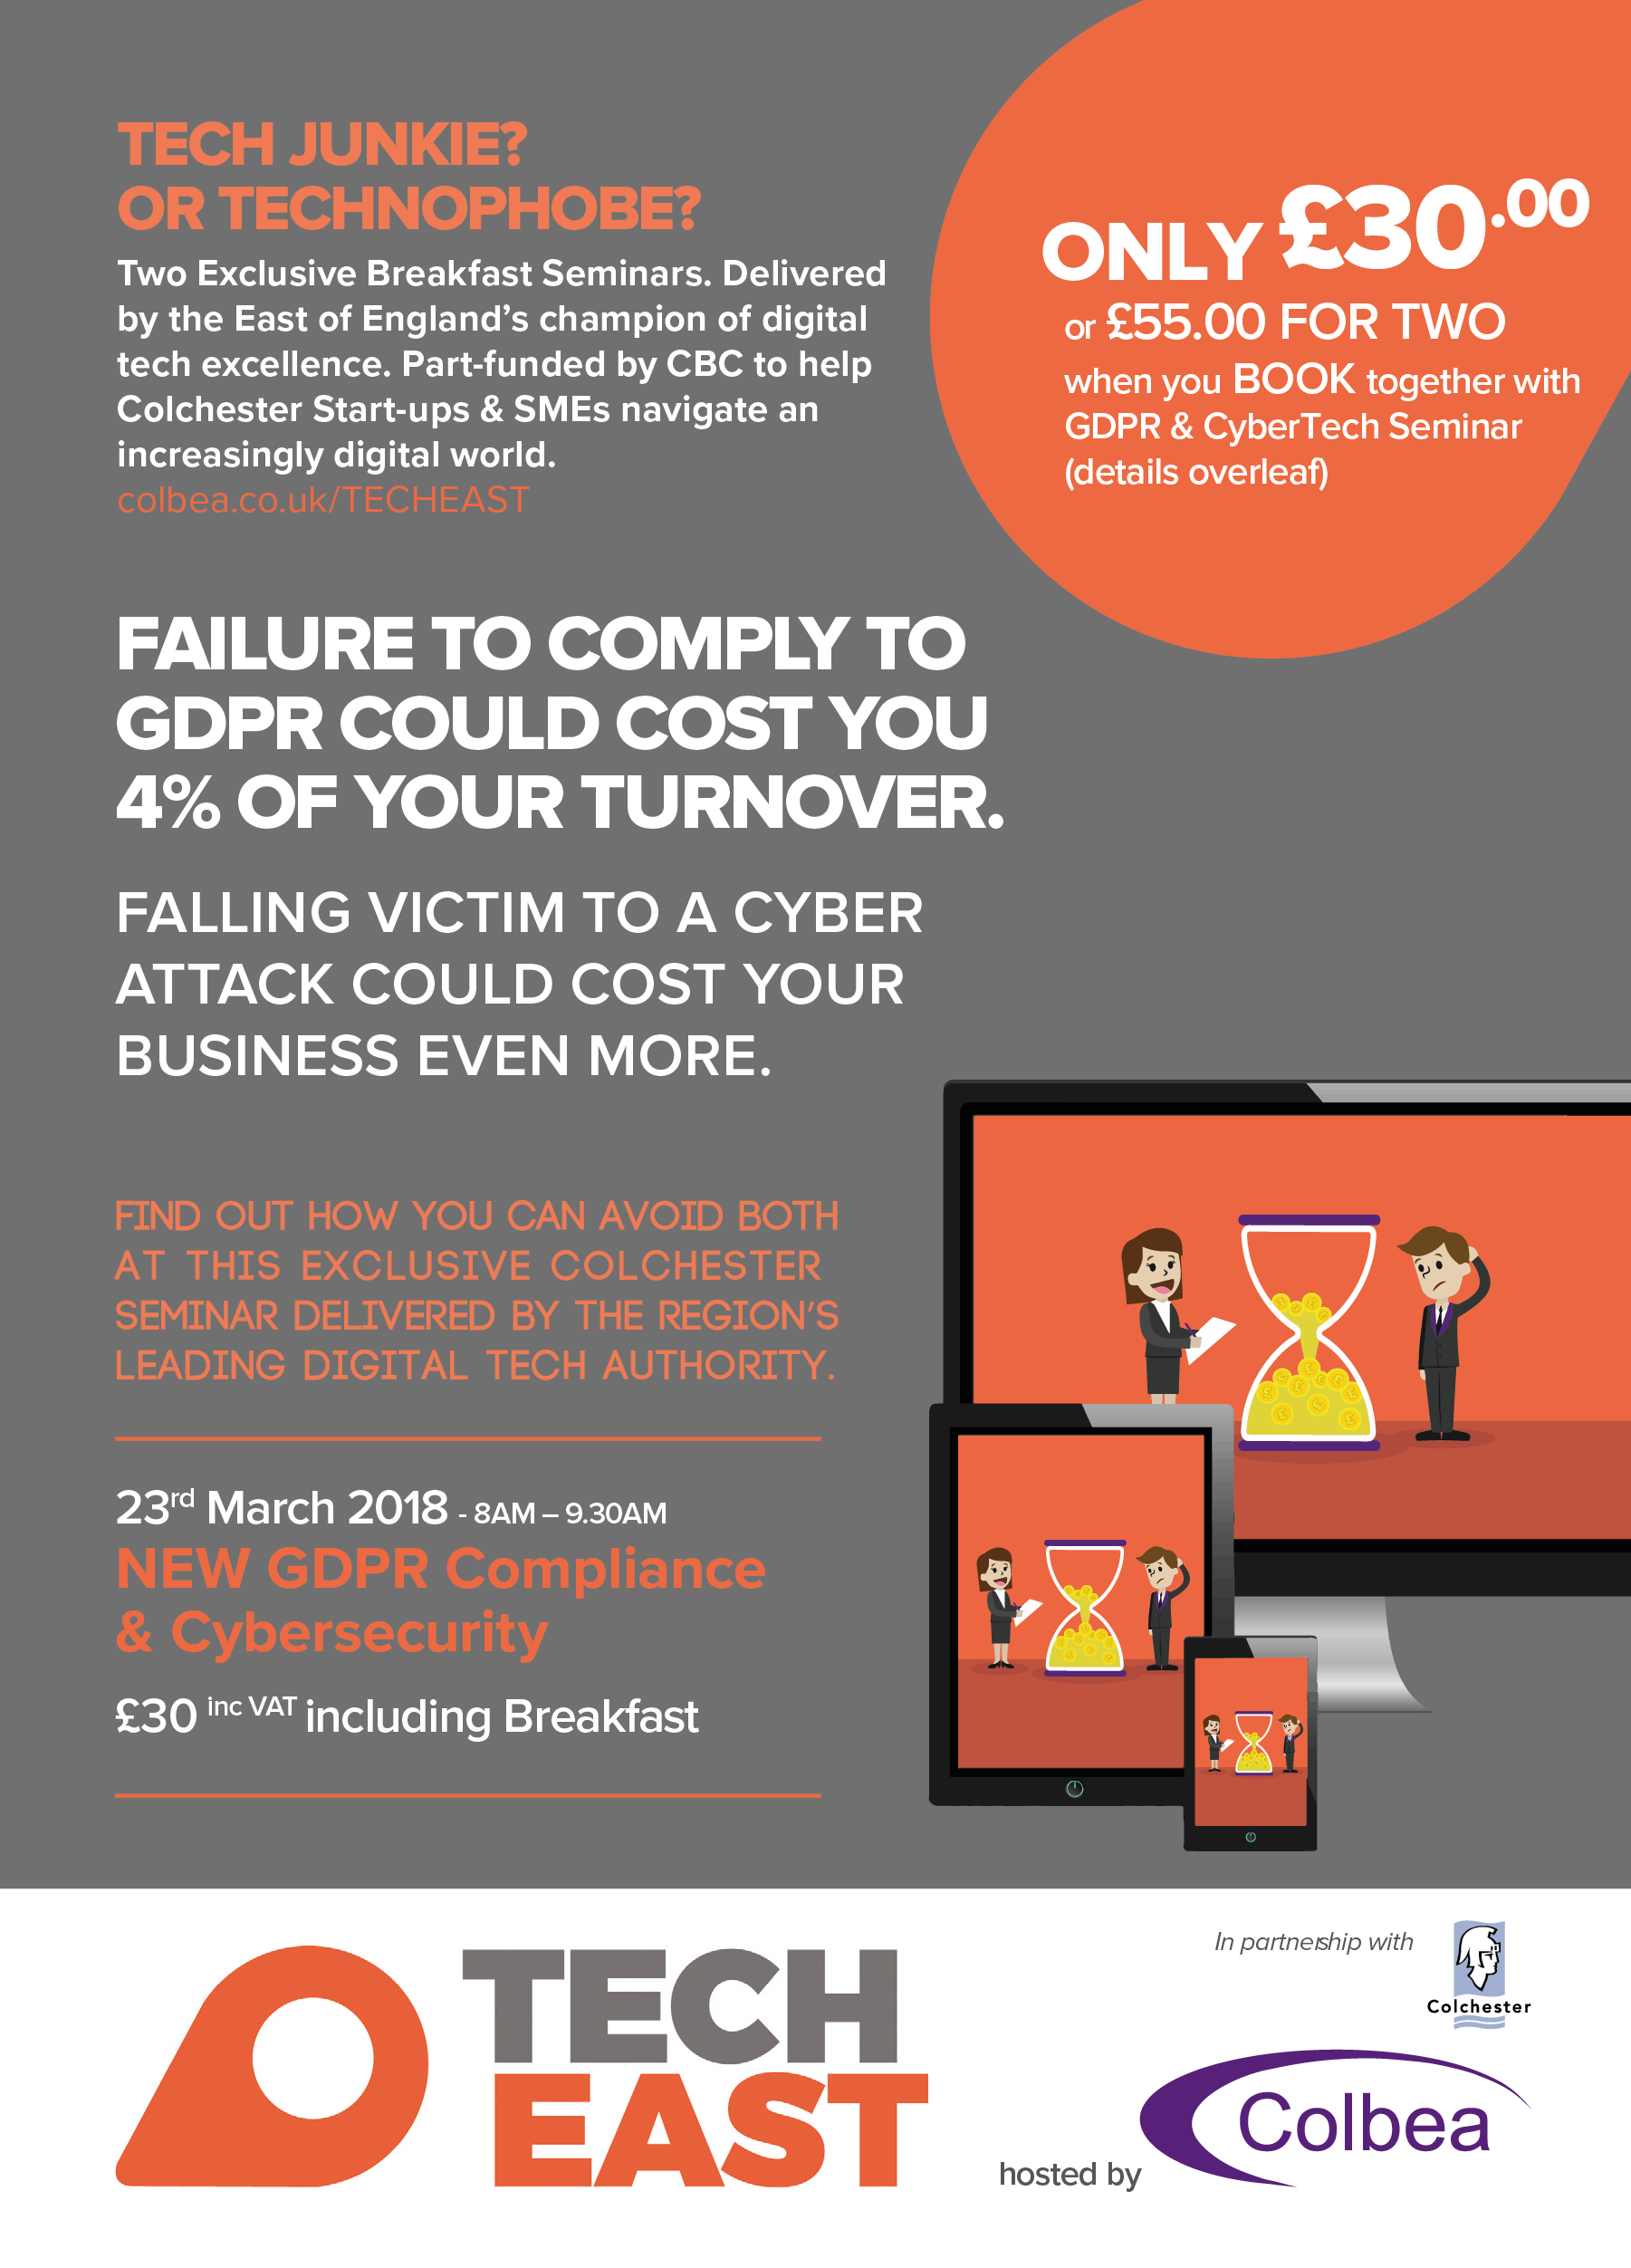 GDPR Seminar by TechEast and Colbea in Partnership with Colchester Borough Counci